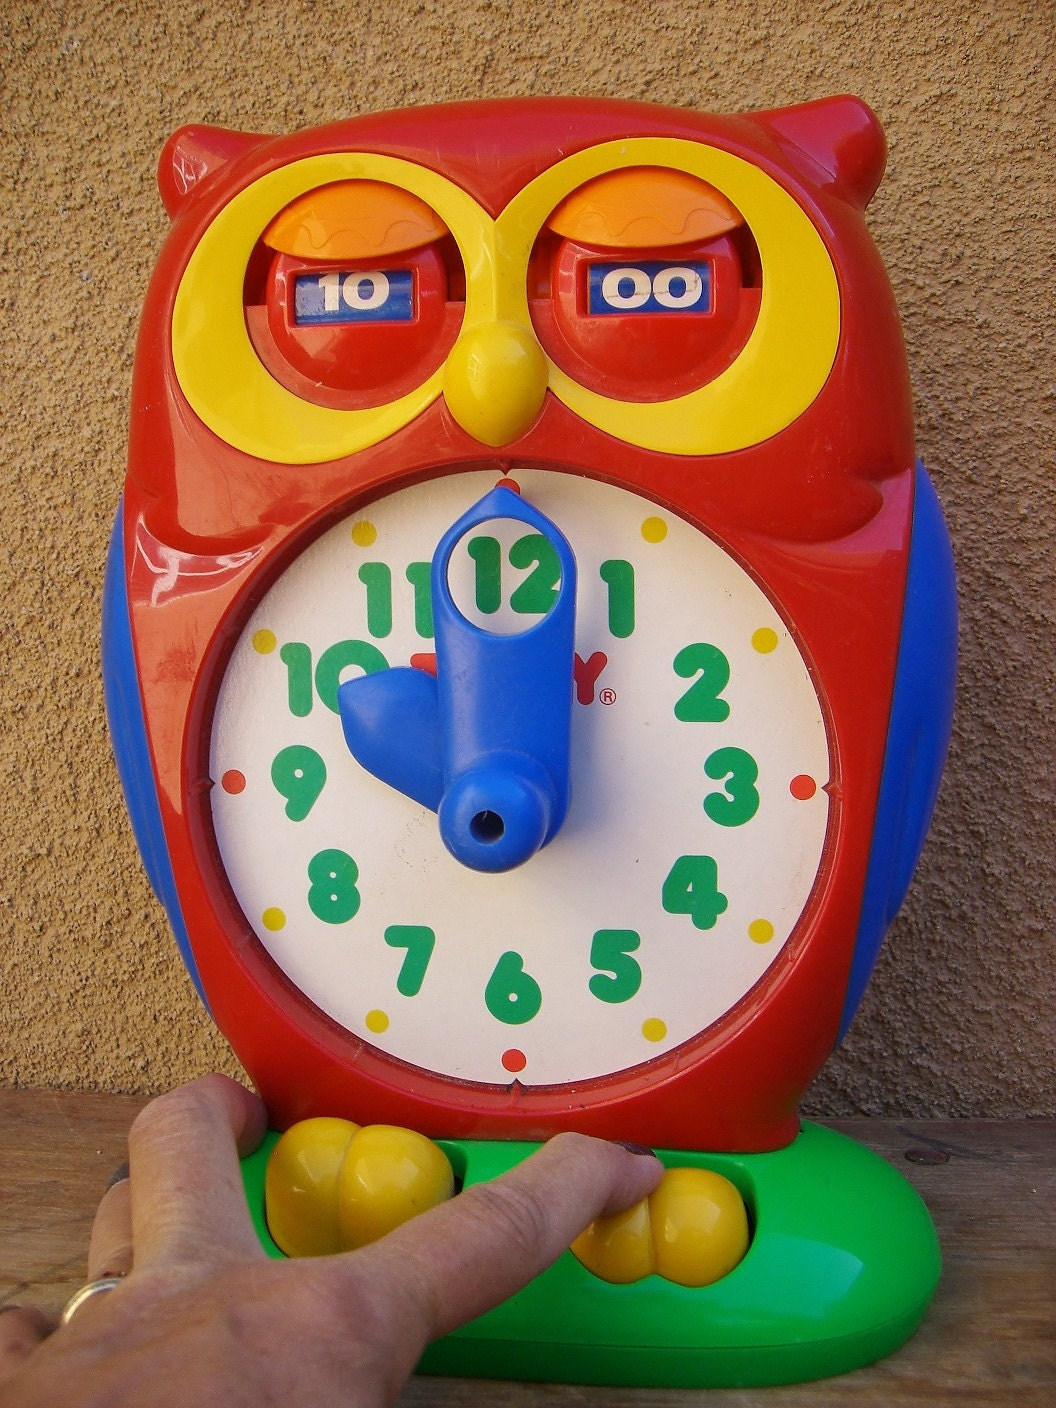 Toys that Help to Learn Time - Educational Toys Planet